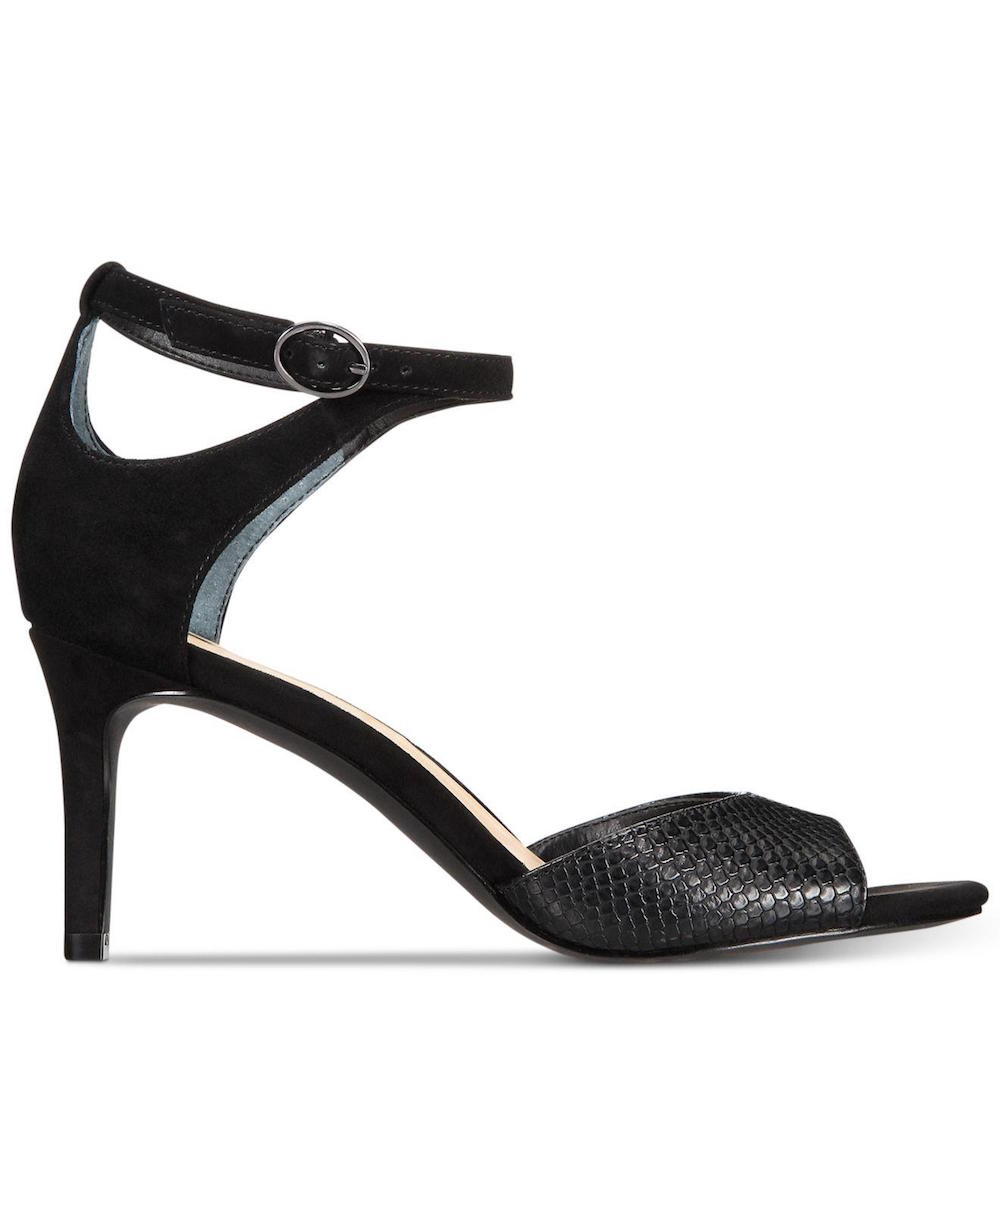 Alfani-Womens-Galeah-Open-Toe-Casual-Ankle-Strap-Sandals thumbnail 9